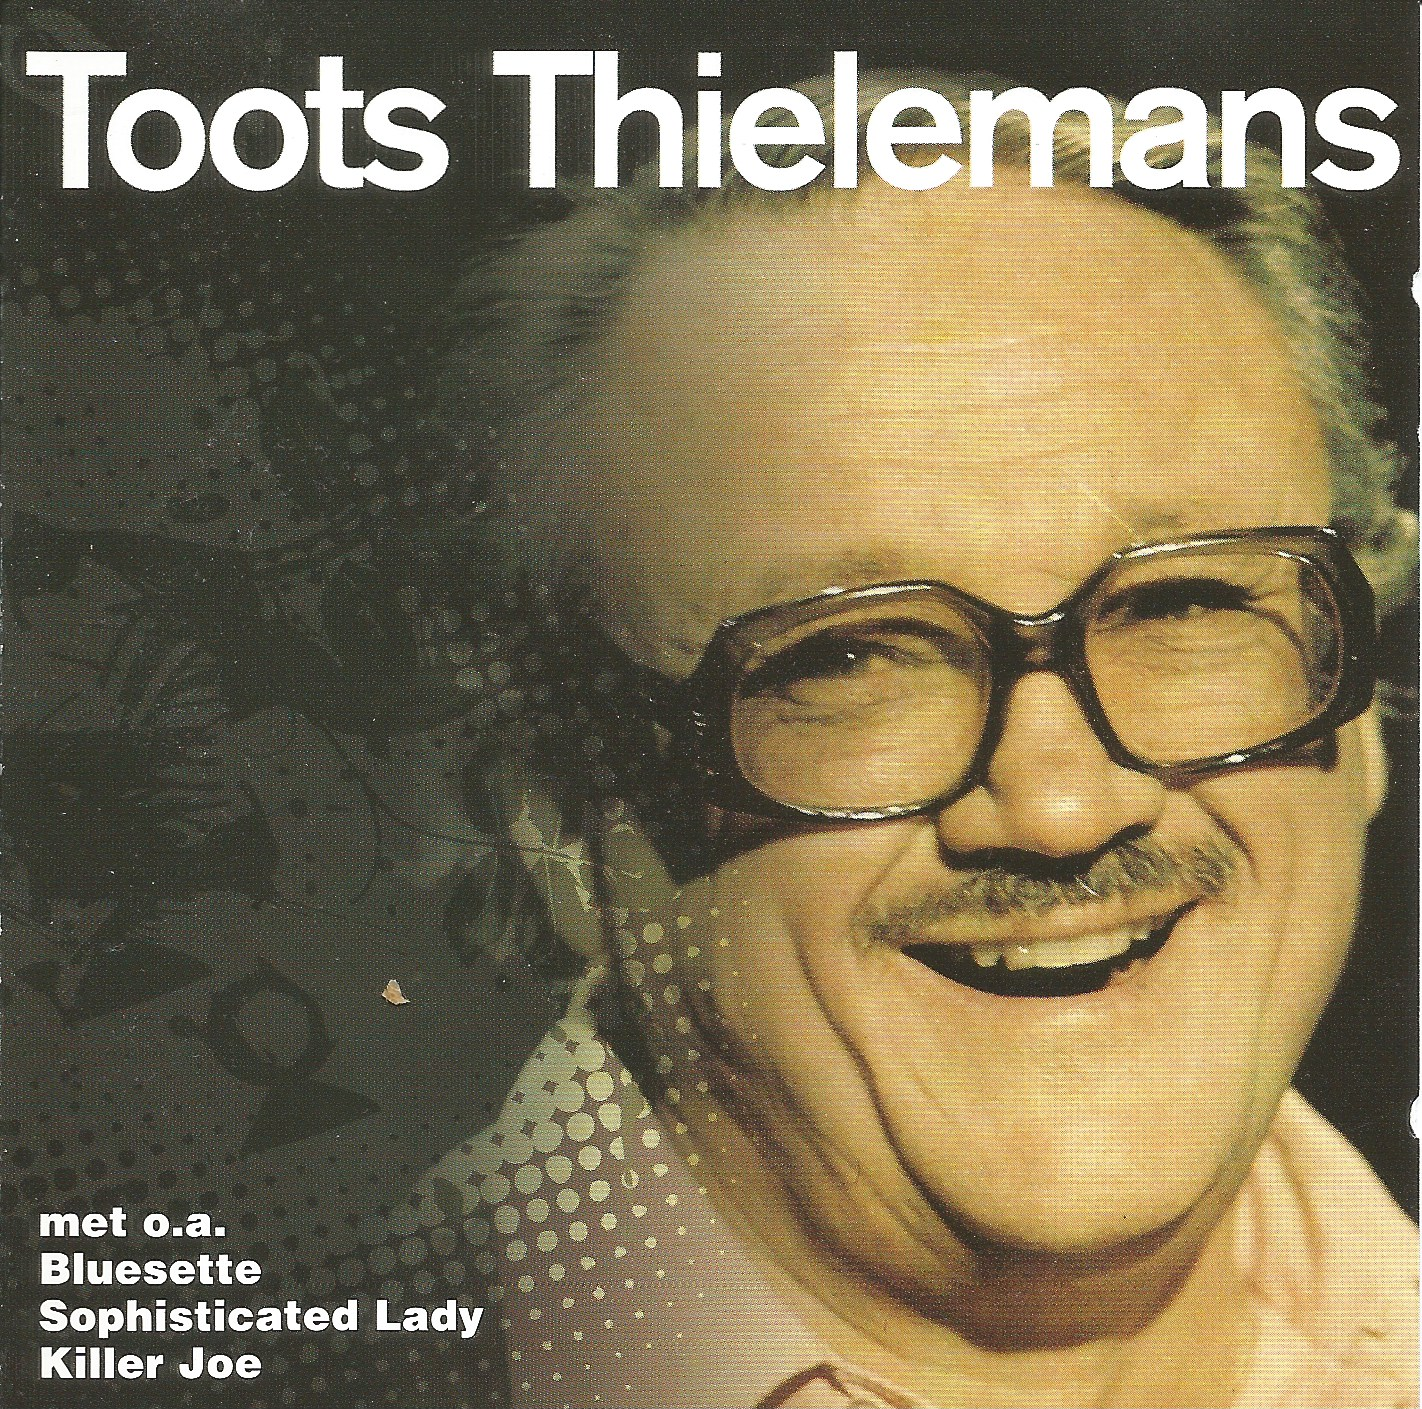 jaquettes3/Toots-Thielemans_Collections.jpeg